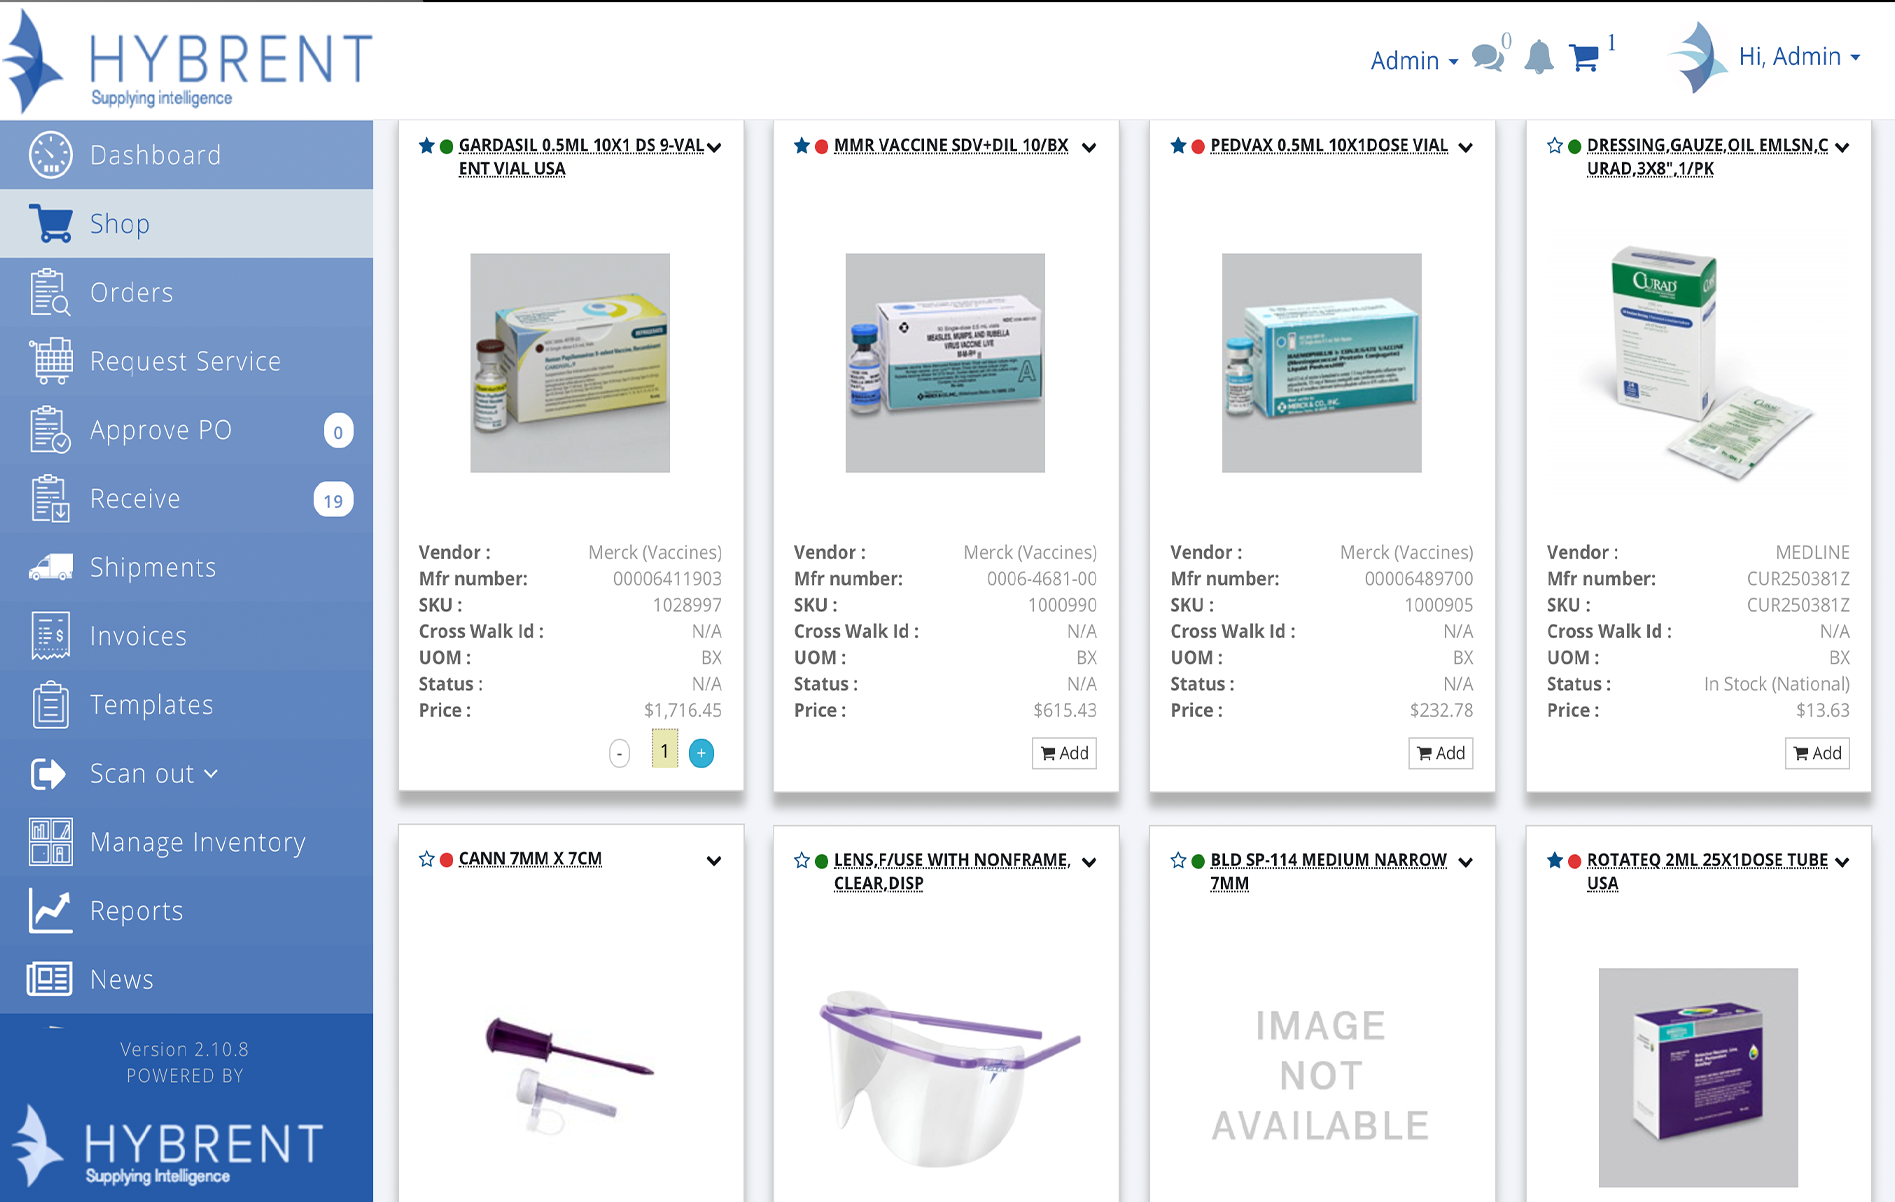 Hybrent Software - Shopping screen with product images